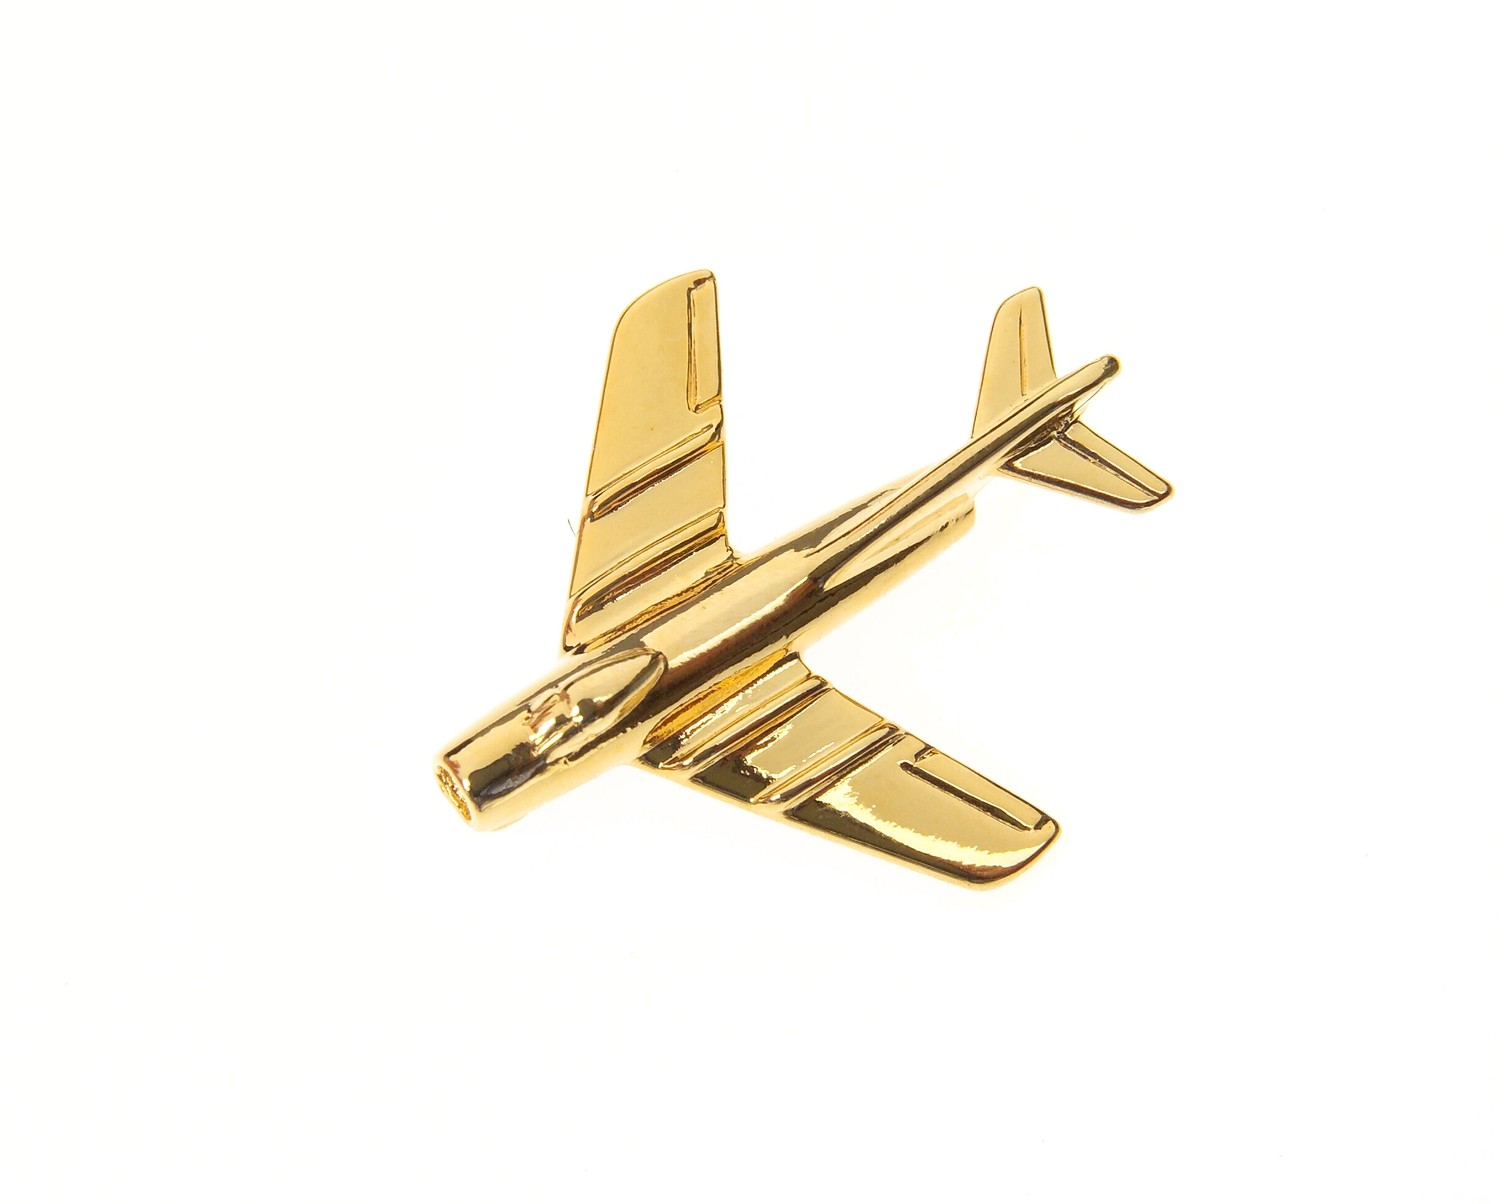 Mig 15 Fagot Gold Plated Tie / Lapel Pin